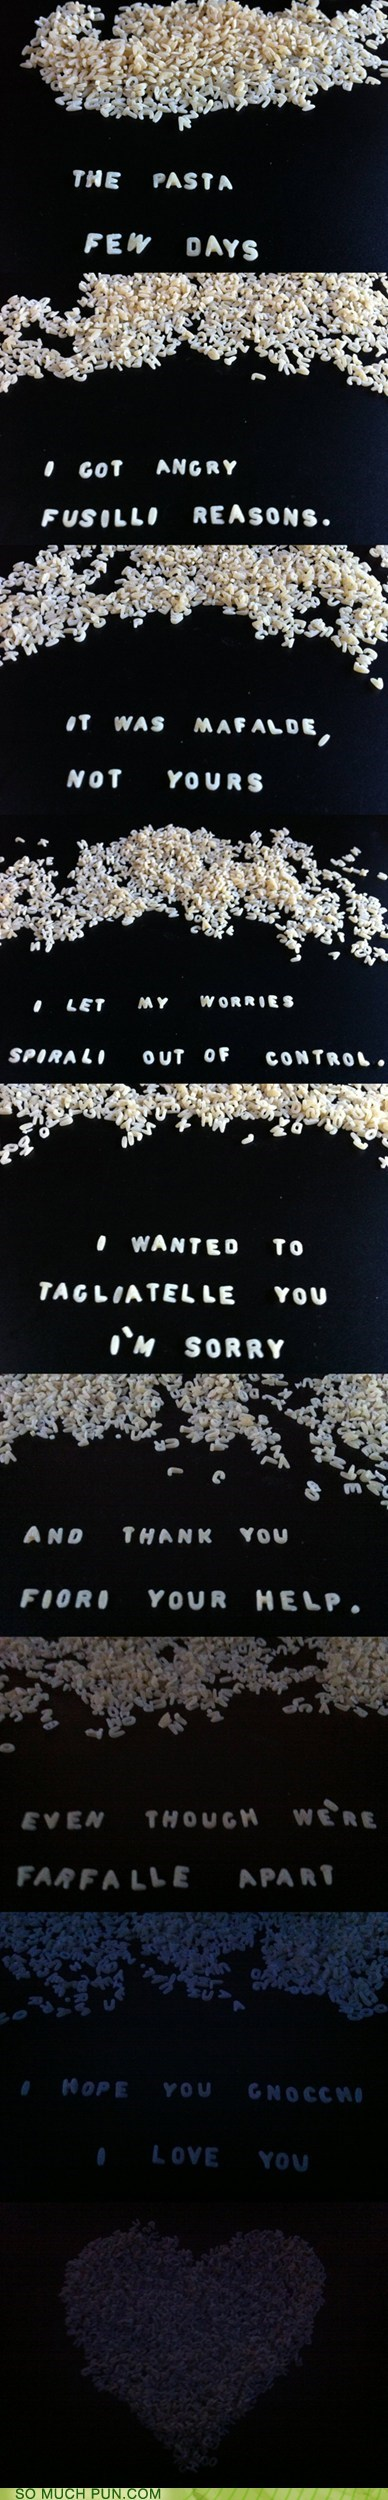 apologizing apology pasta similar sounding types variety - 6094873600